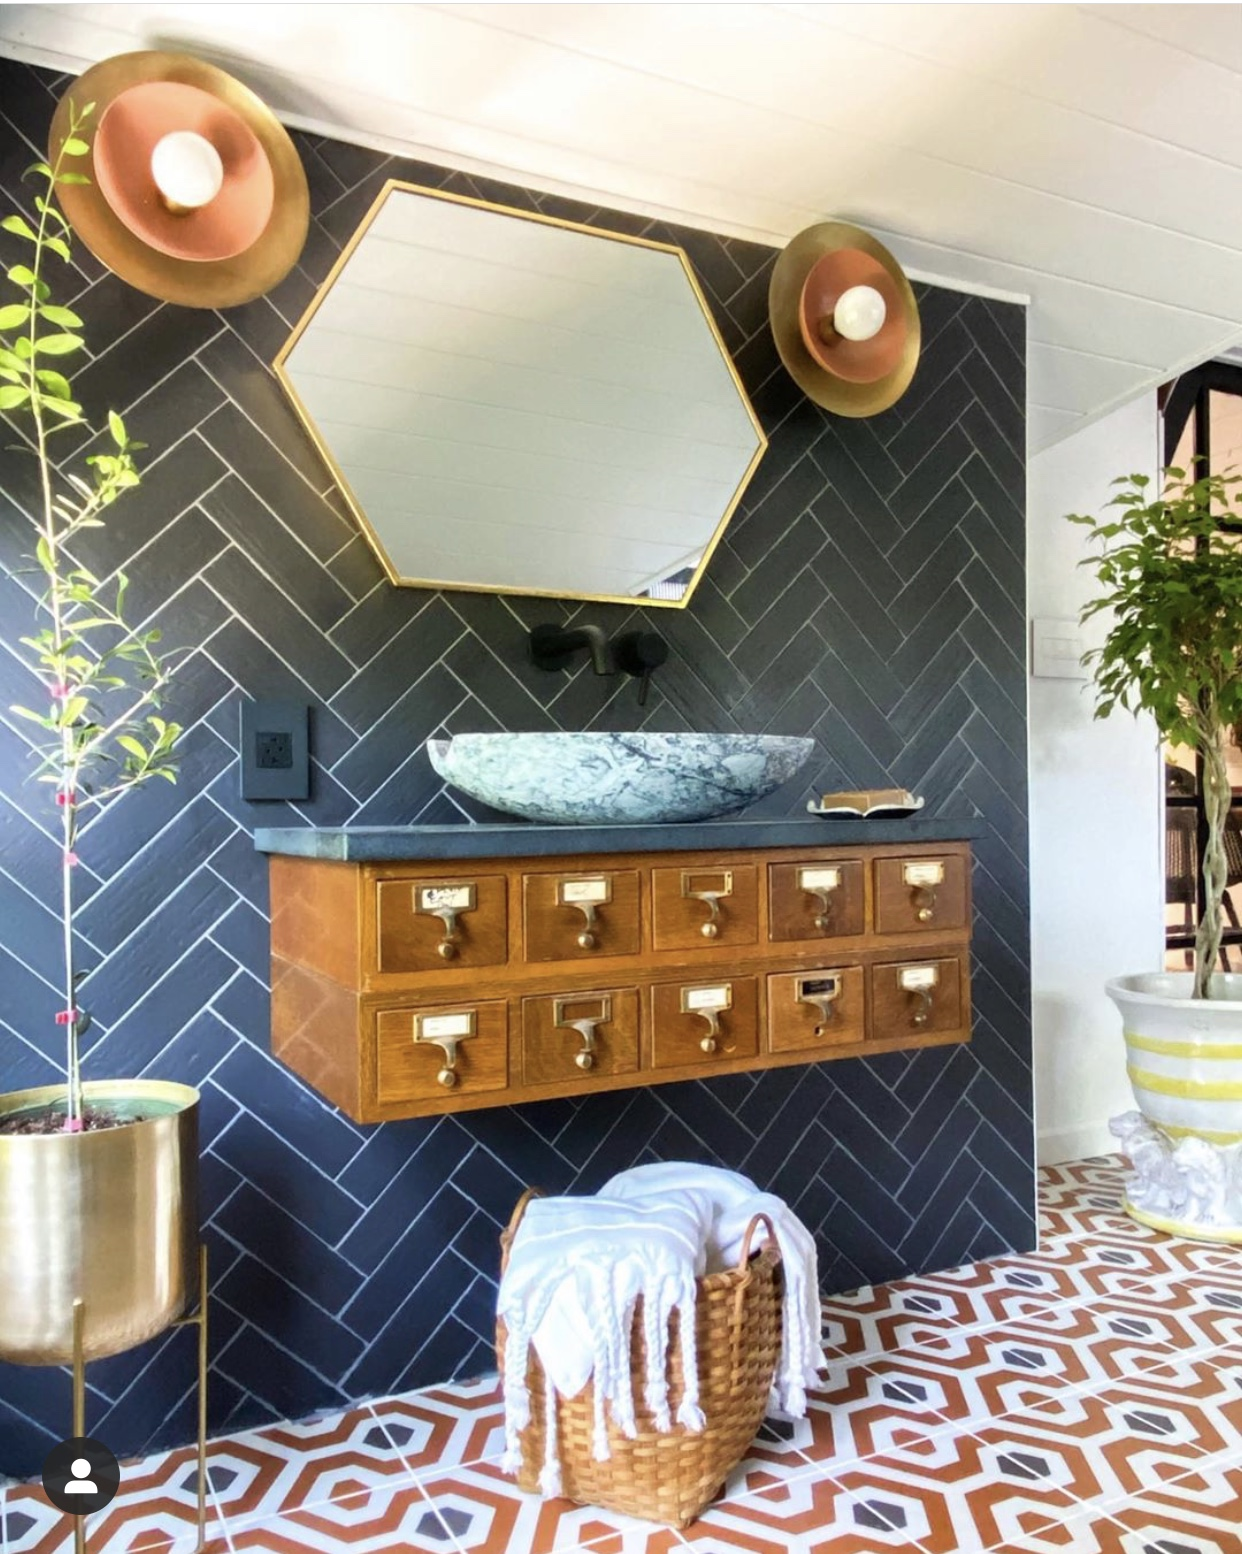 Kate Pearce was one of the featured designers in the One Room Challenge and she did certainly not disappoint.  The use of tiles in this project is so gripping.  An she has used a vintage piece which touches on one of the other trends that I mention. 📷@katepearcevintage